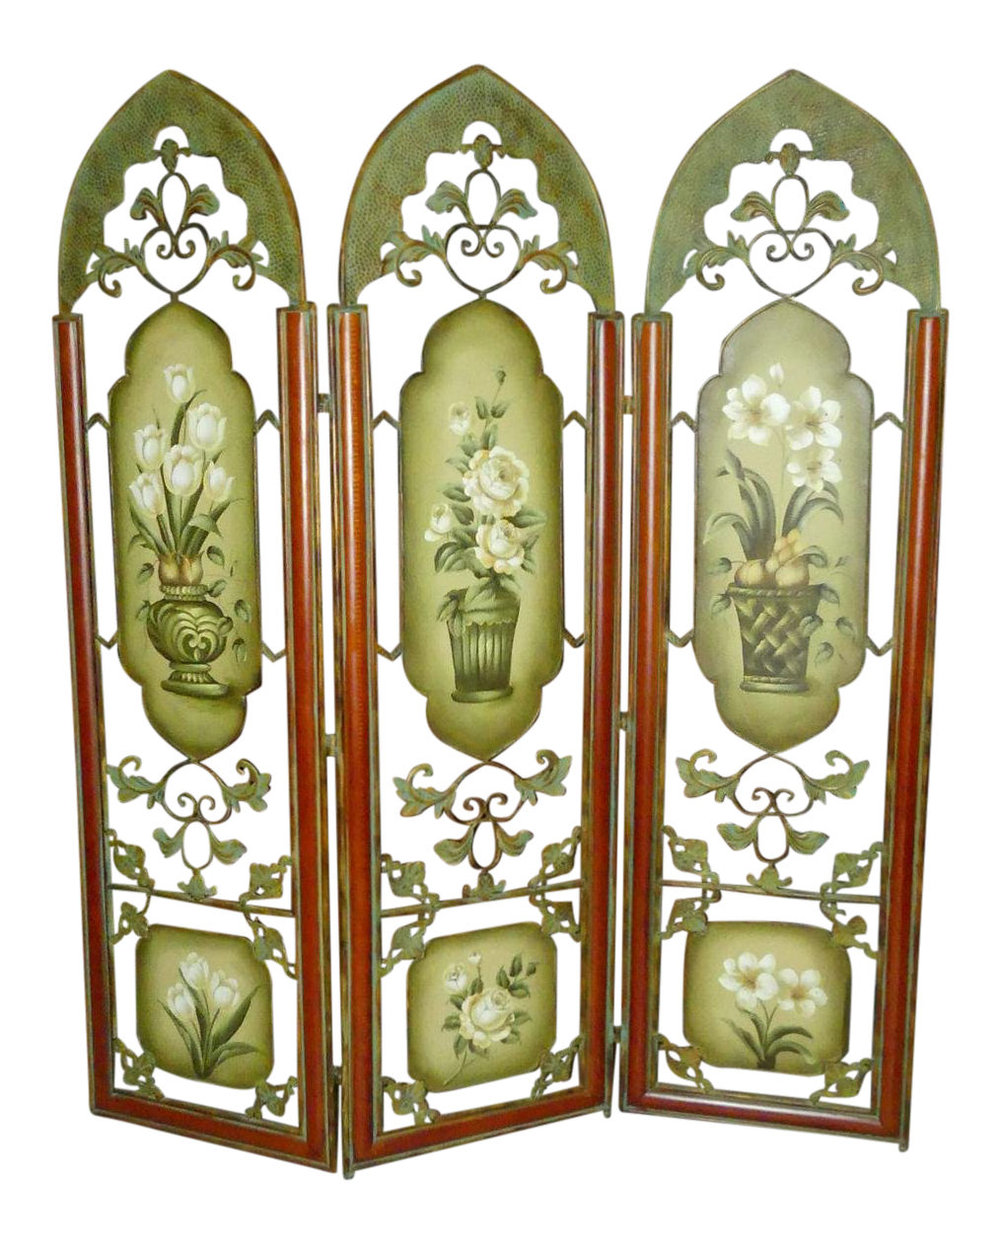 60-Inch Painted Metal Floor Screen or Room Divider    Perfect size for a queen size headboard   $750